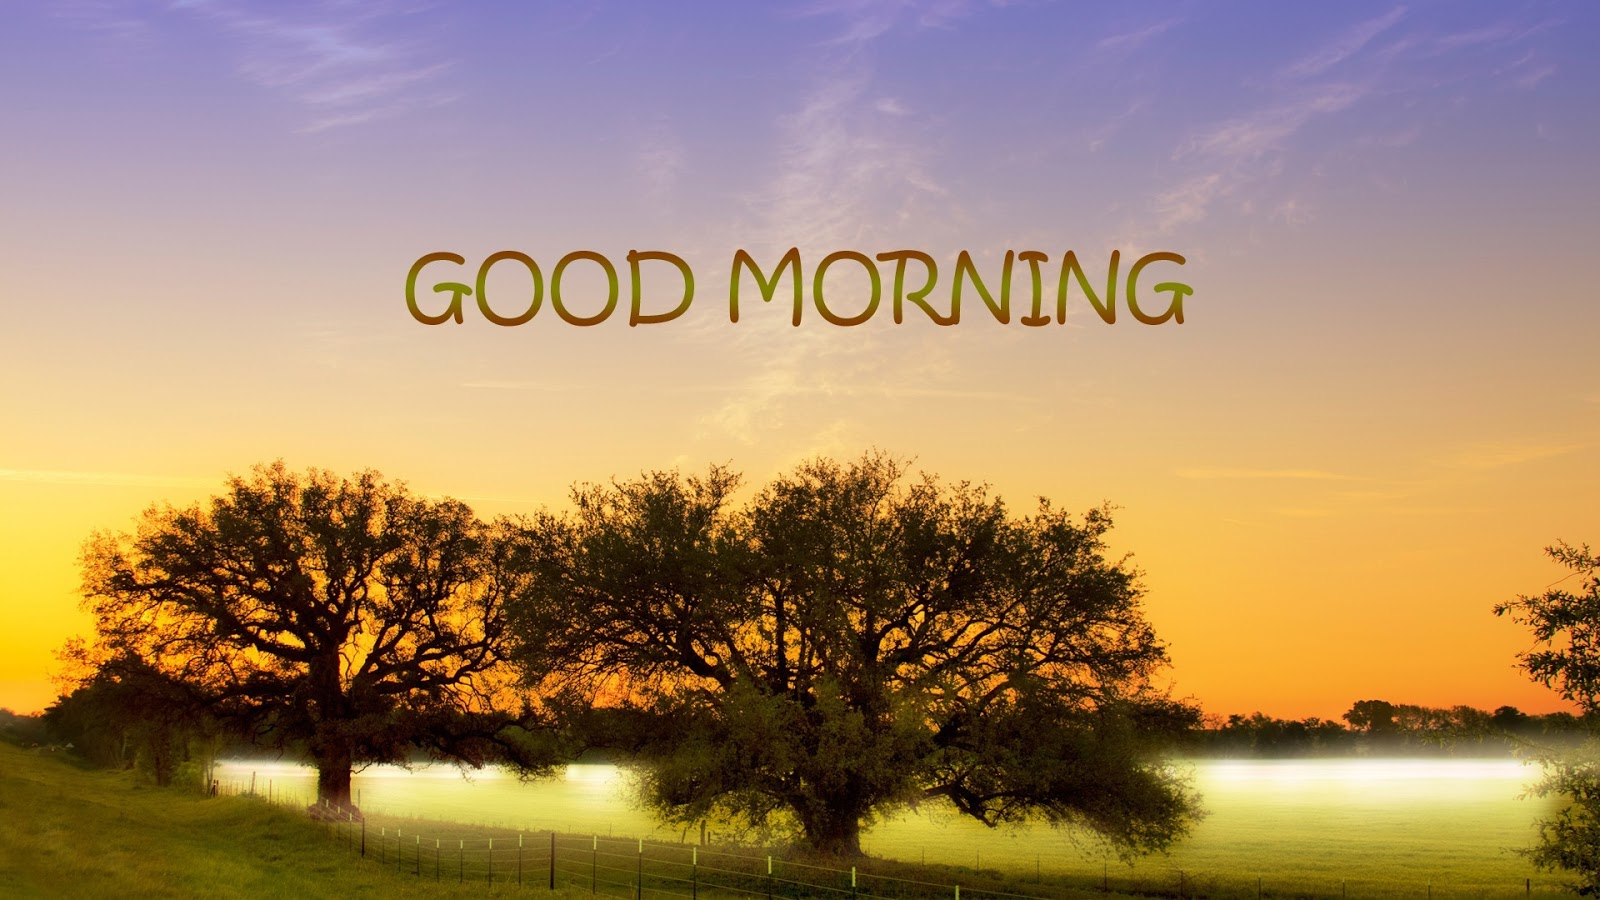 good morning images and qutes